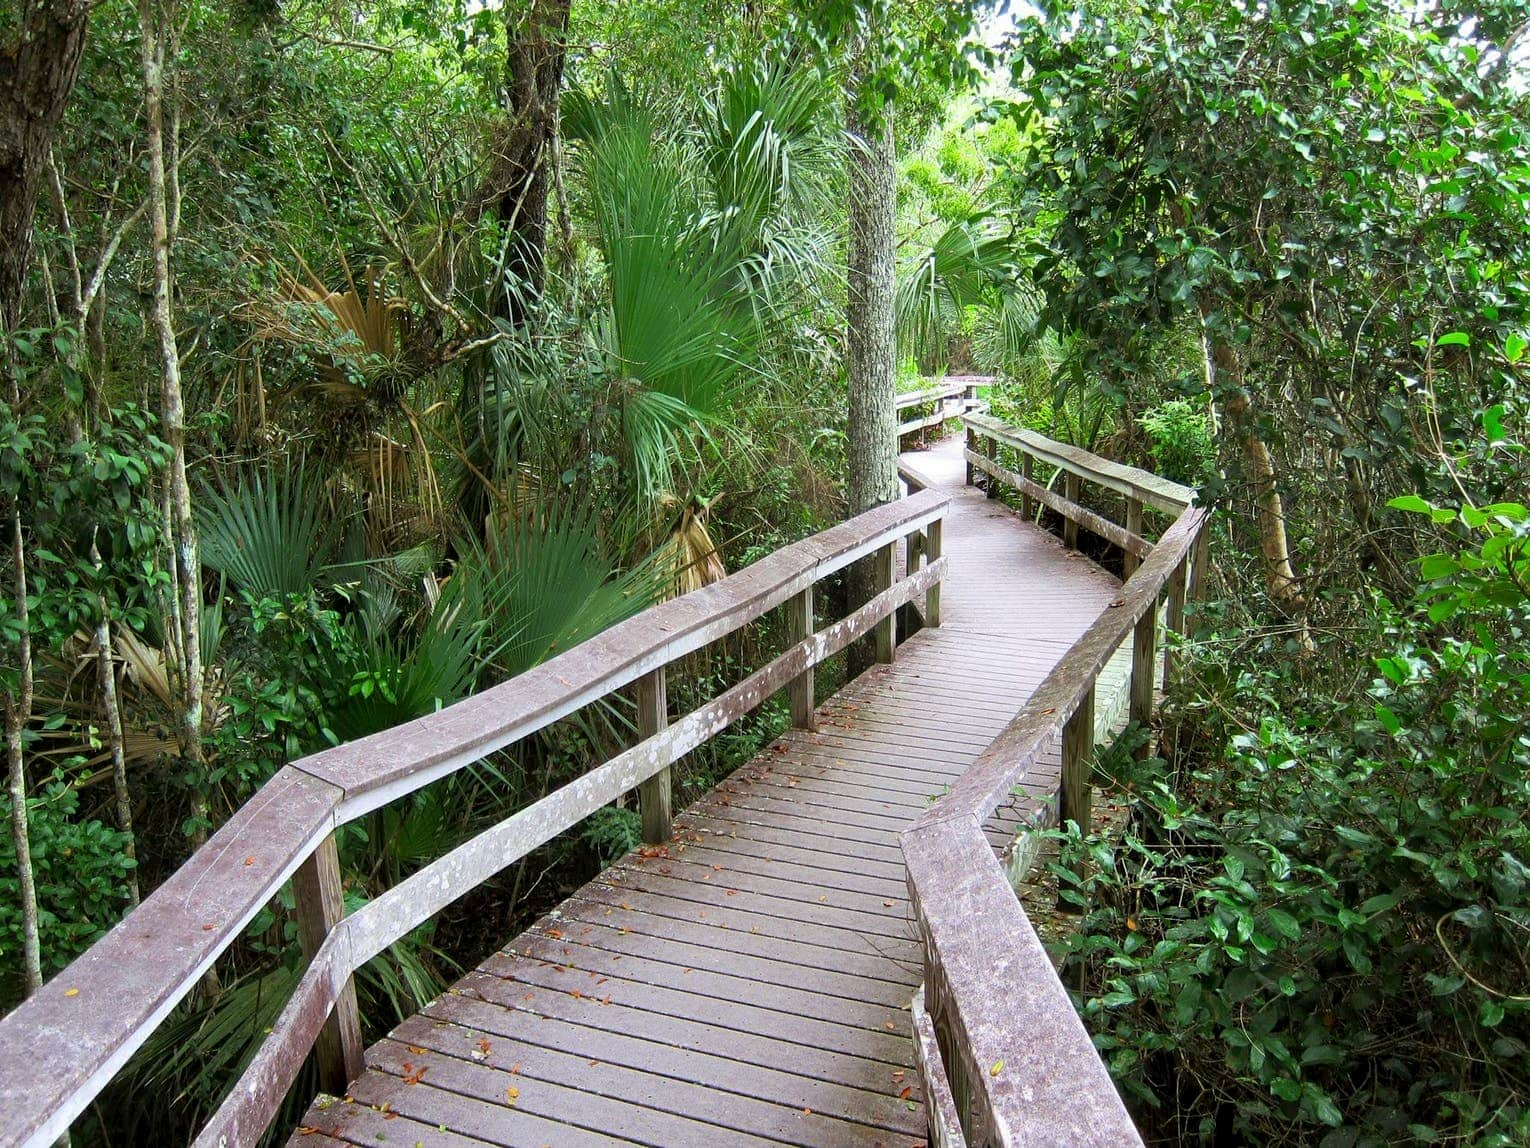 Wooden boardwalk weaving through thick forests with mangrove trees.